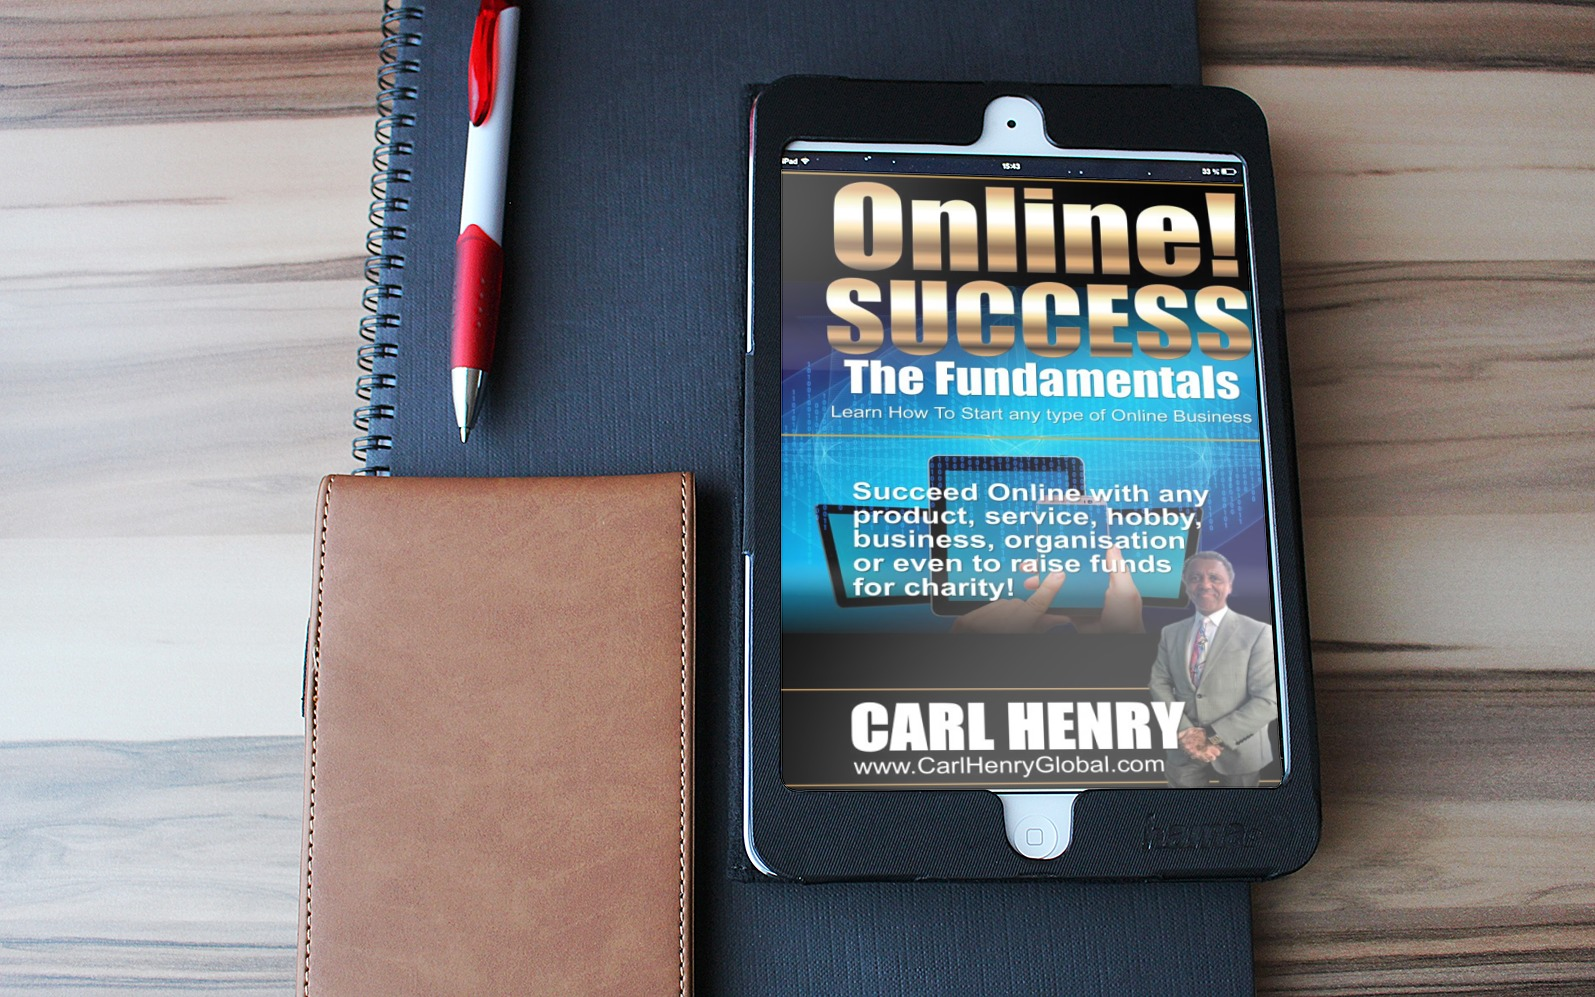 Carl-Henry-ONLINE-SUCCESS21.jpg